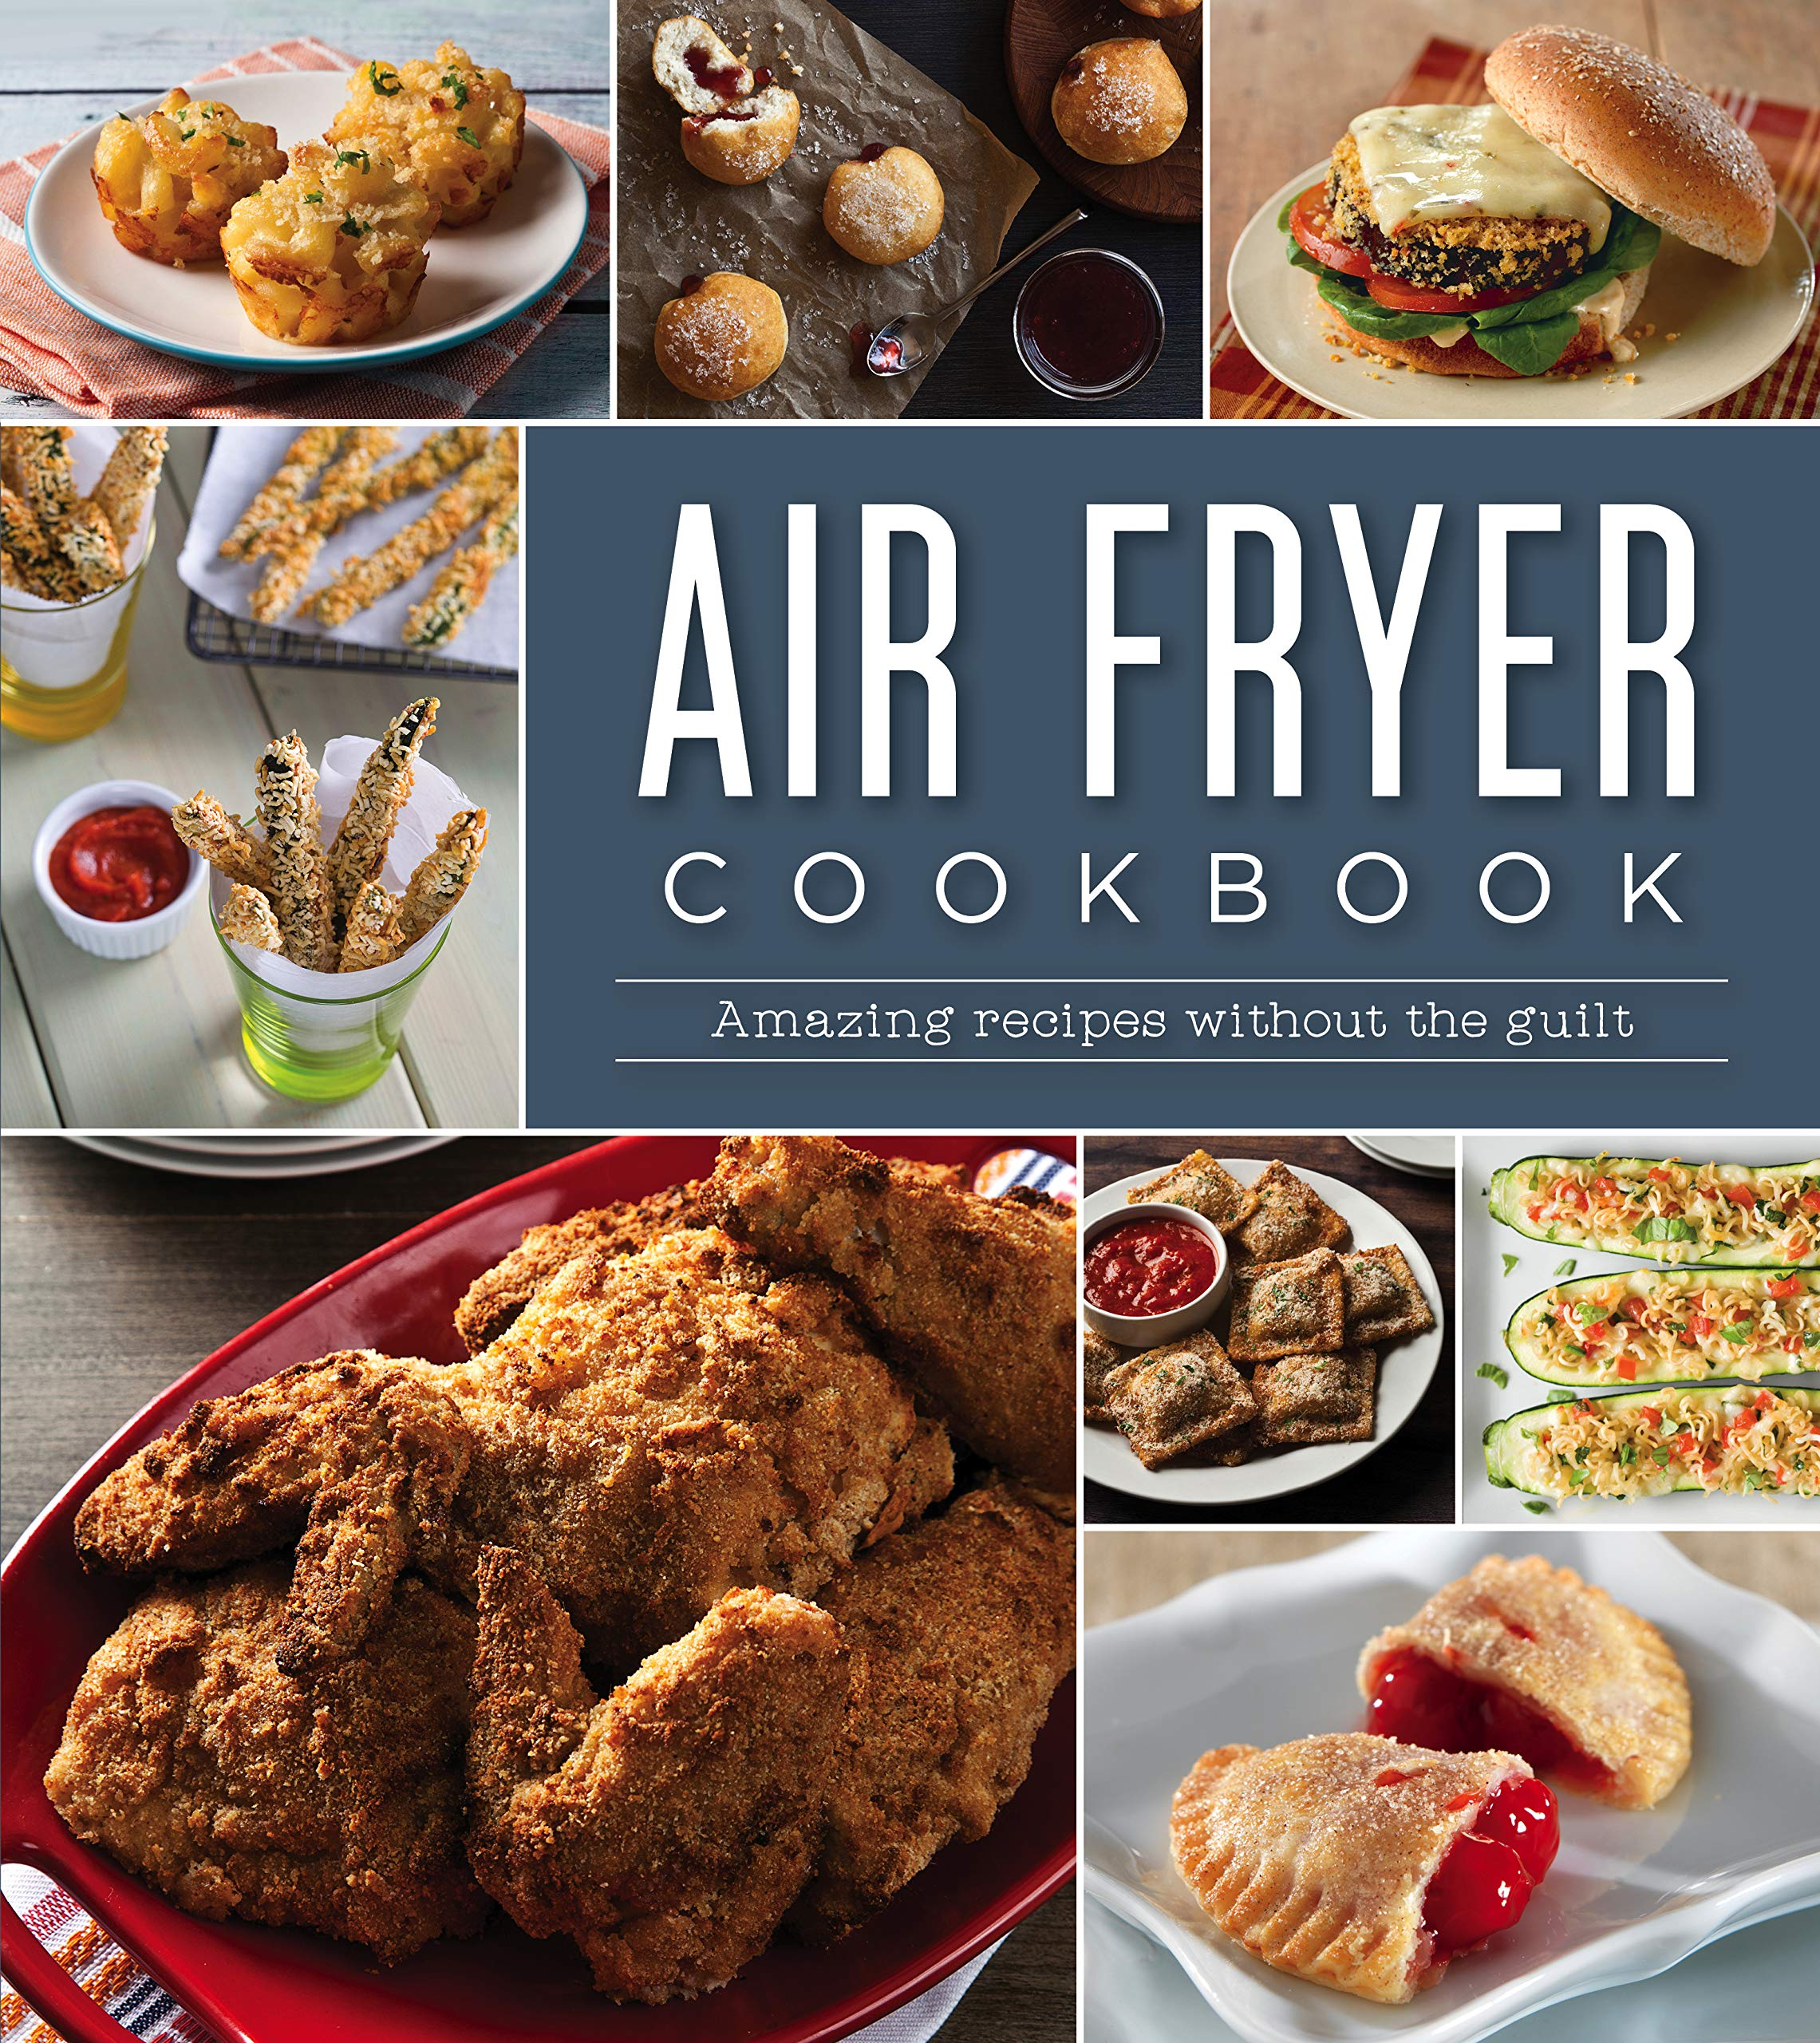 Air Fryer Cookbook 3 Ring Binder product image